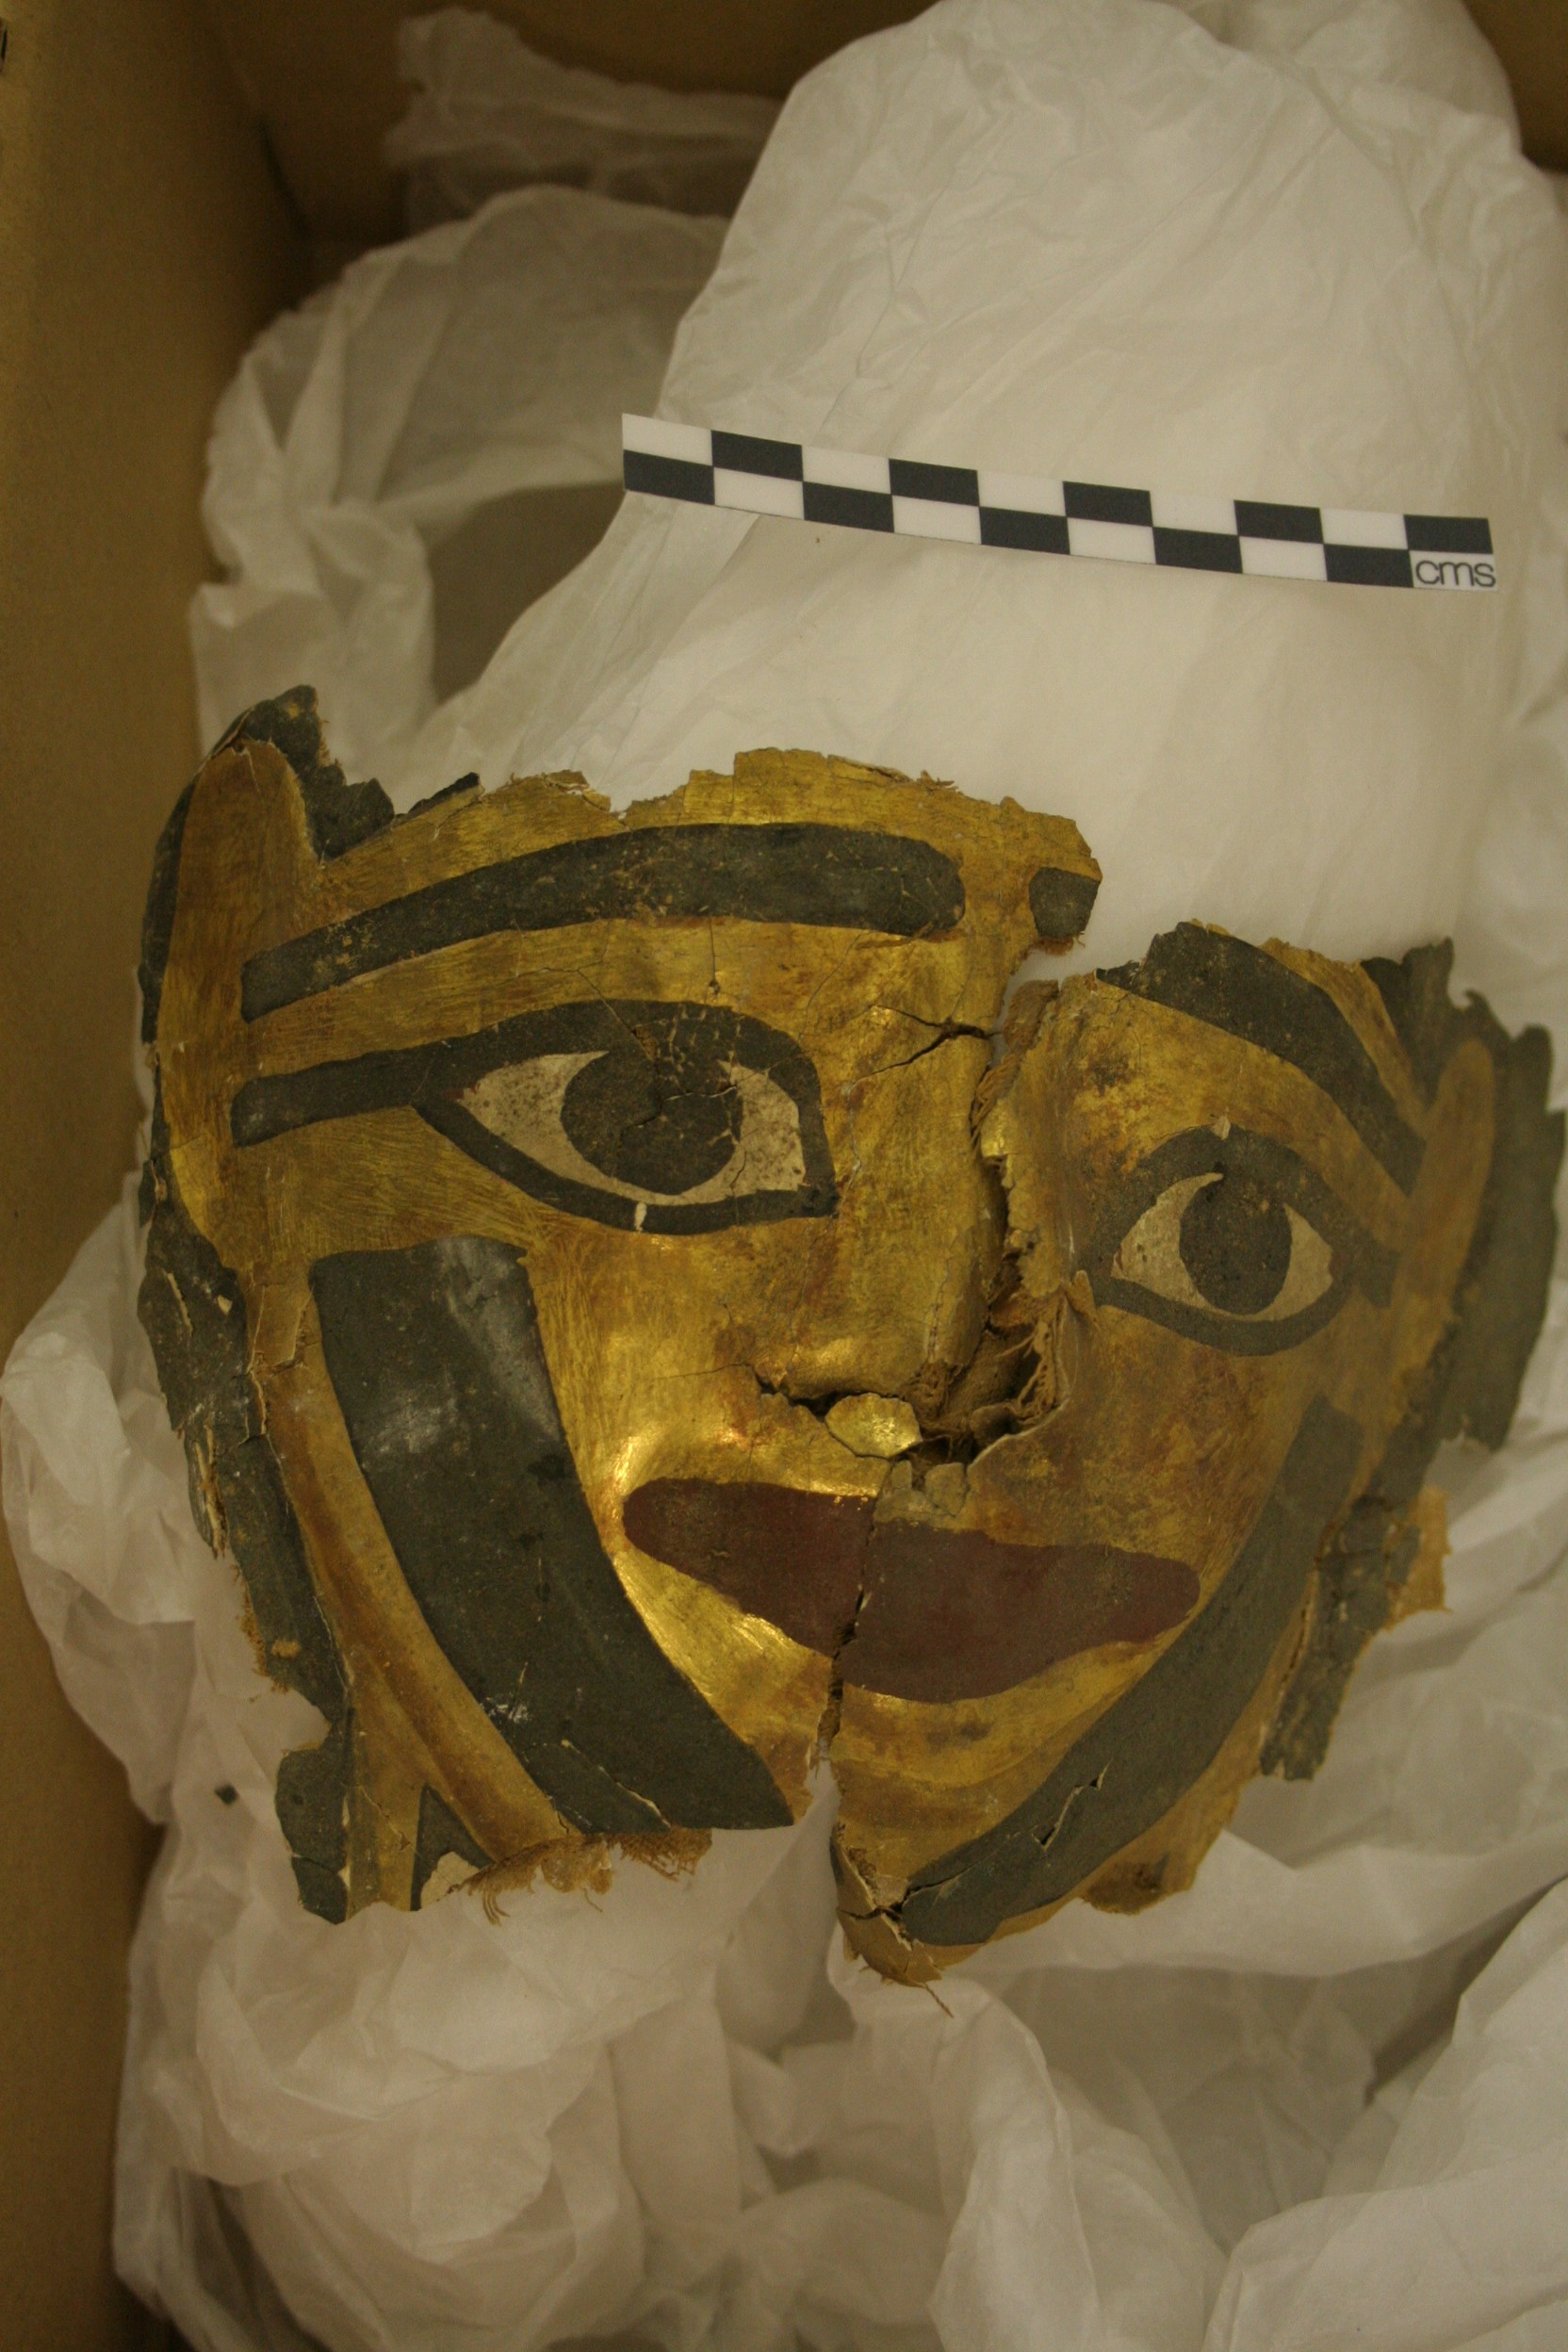 Image for: Mummy mask